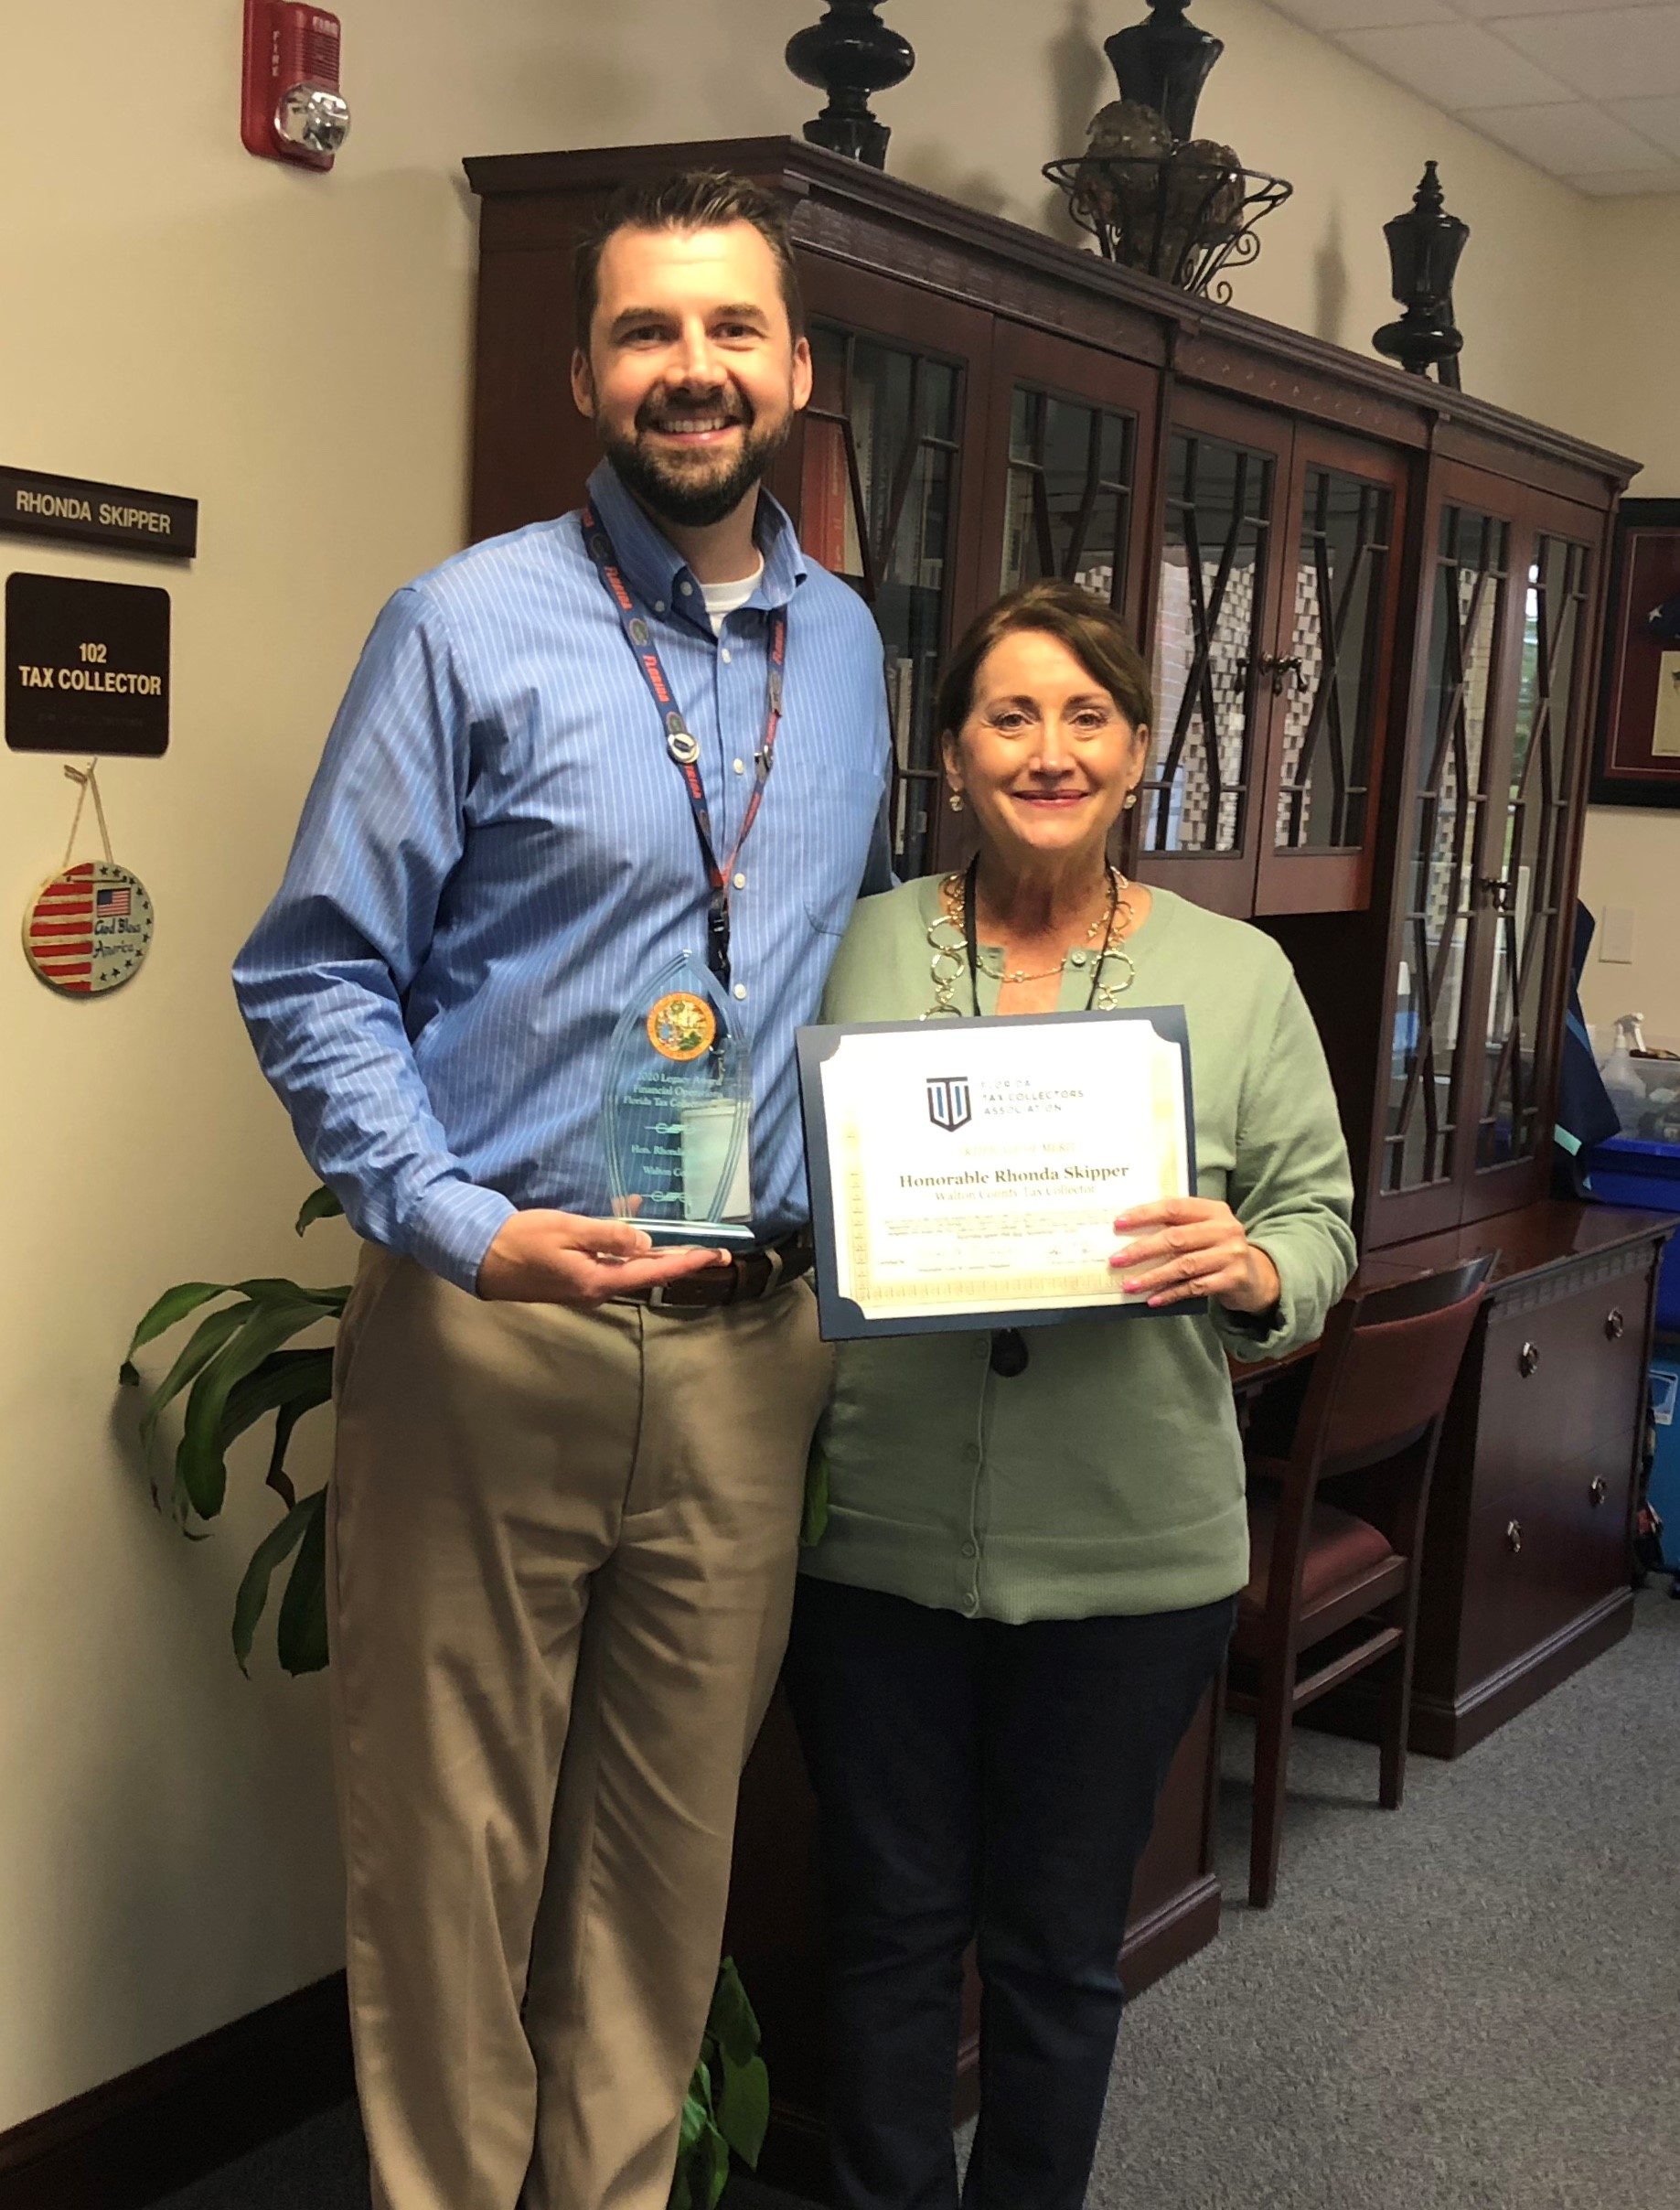 WALTON COUNTY TAX COLLECTOR RECIEVES LEGACY AWARD AND FIRST VICE PRESIDENT DESIGNATION